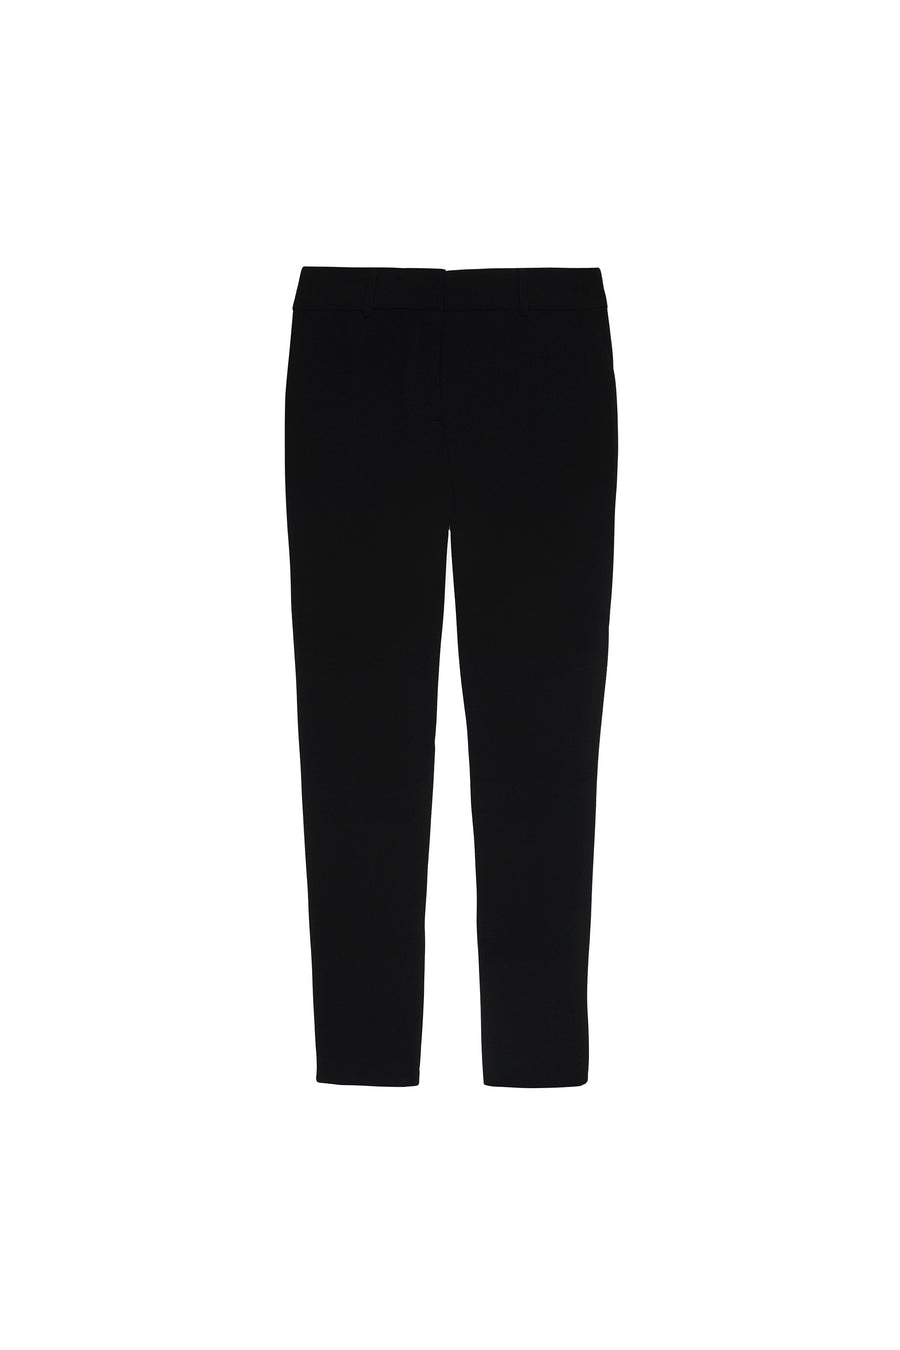 BENJIRO TROUSERS - BLACK Trousers Stylein